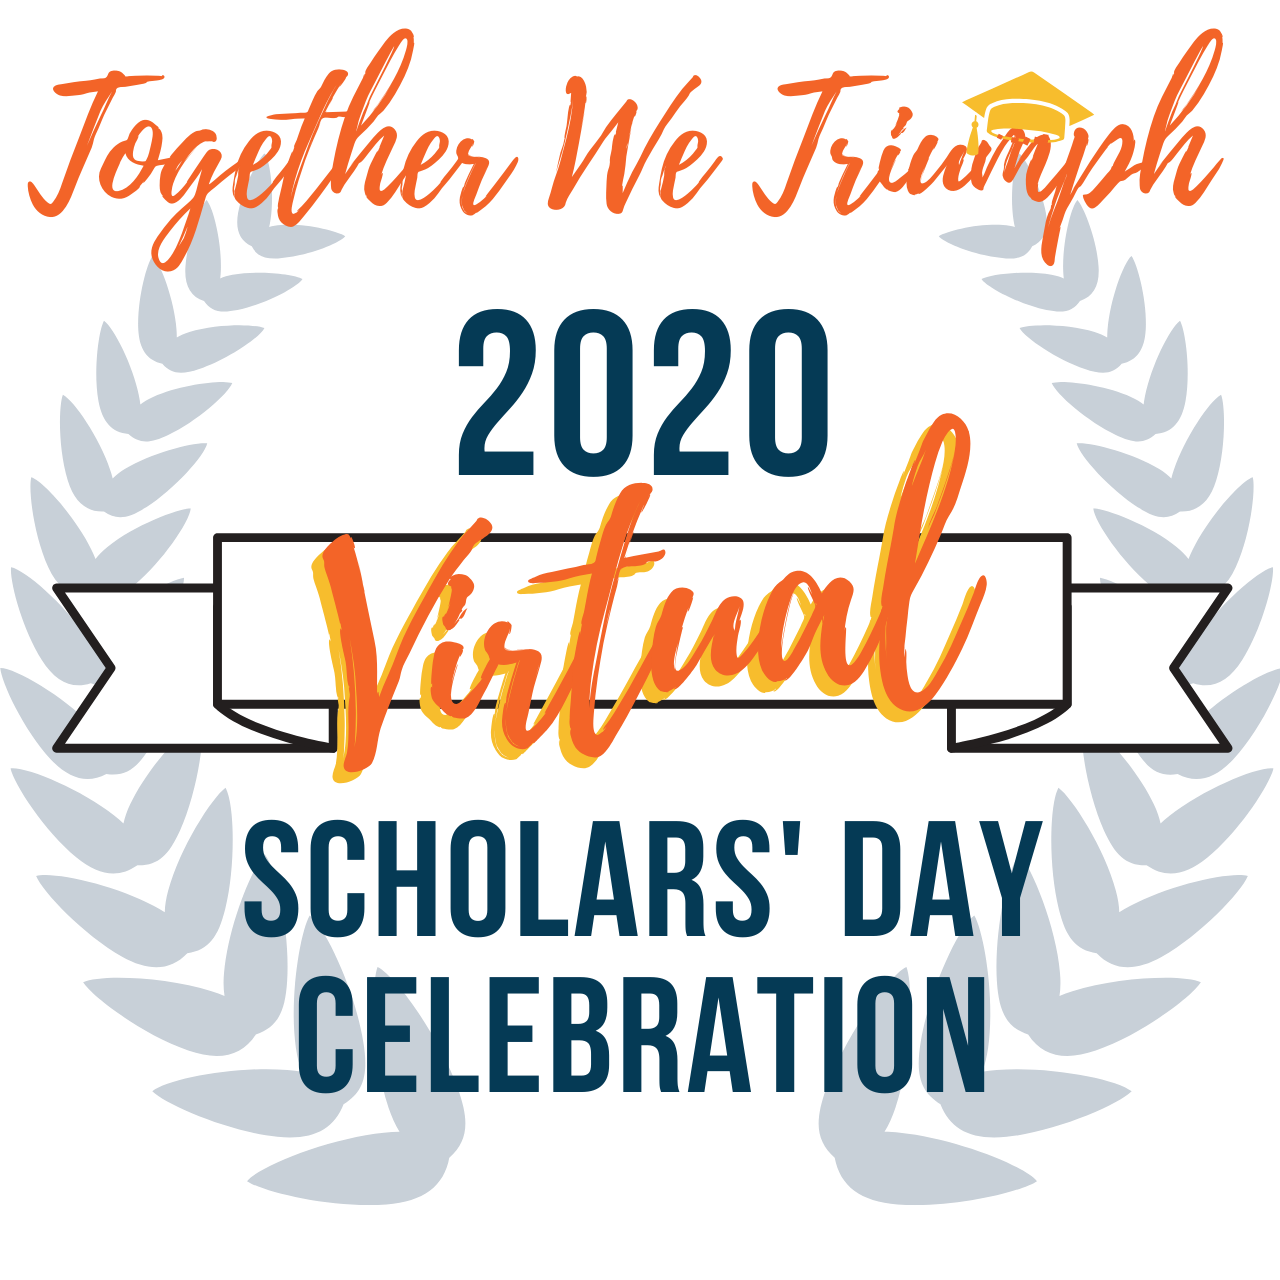 Come together with us (virtually) for our Annual Scholars